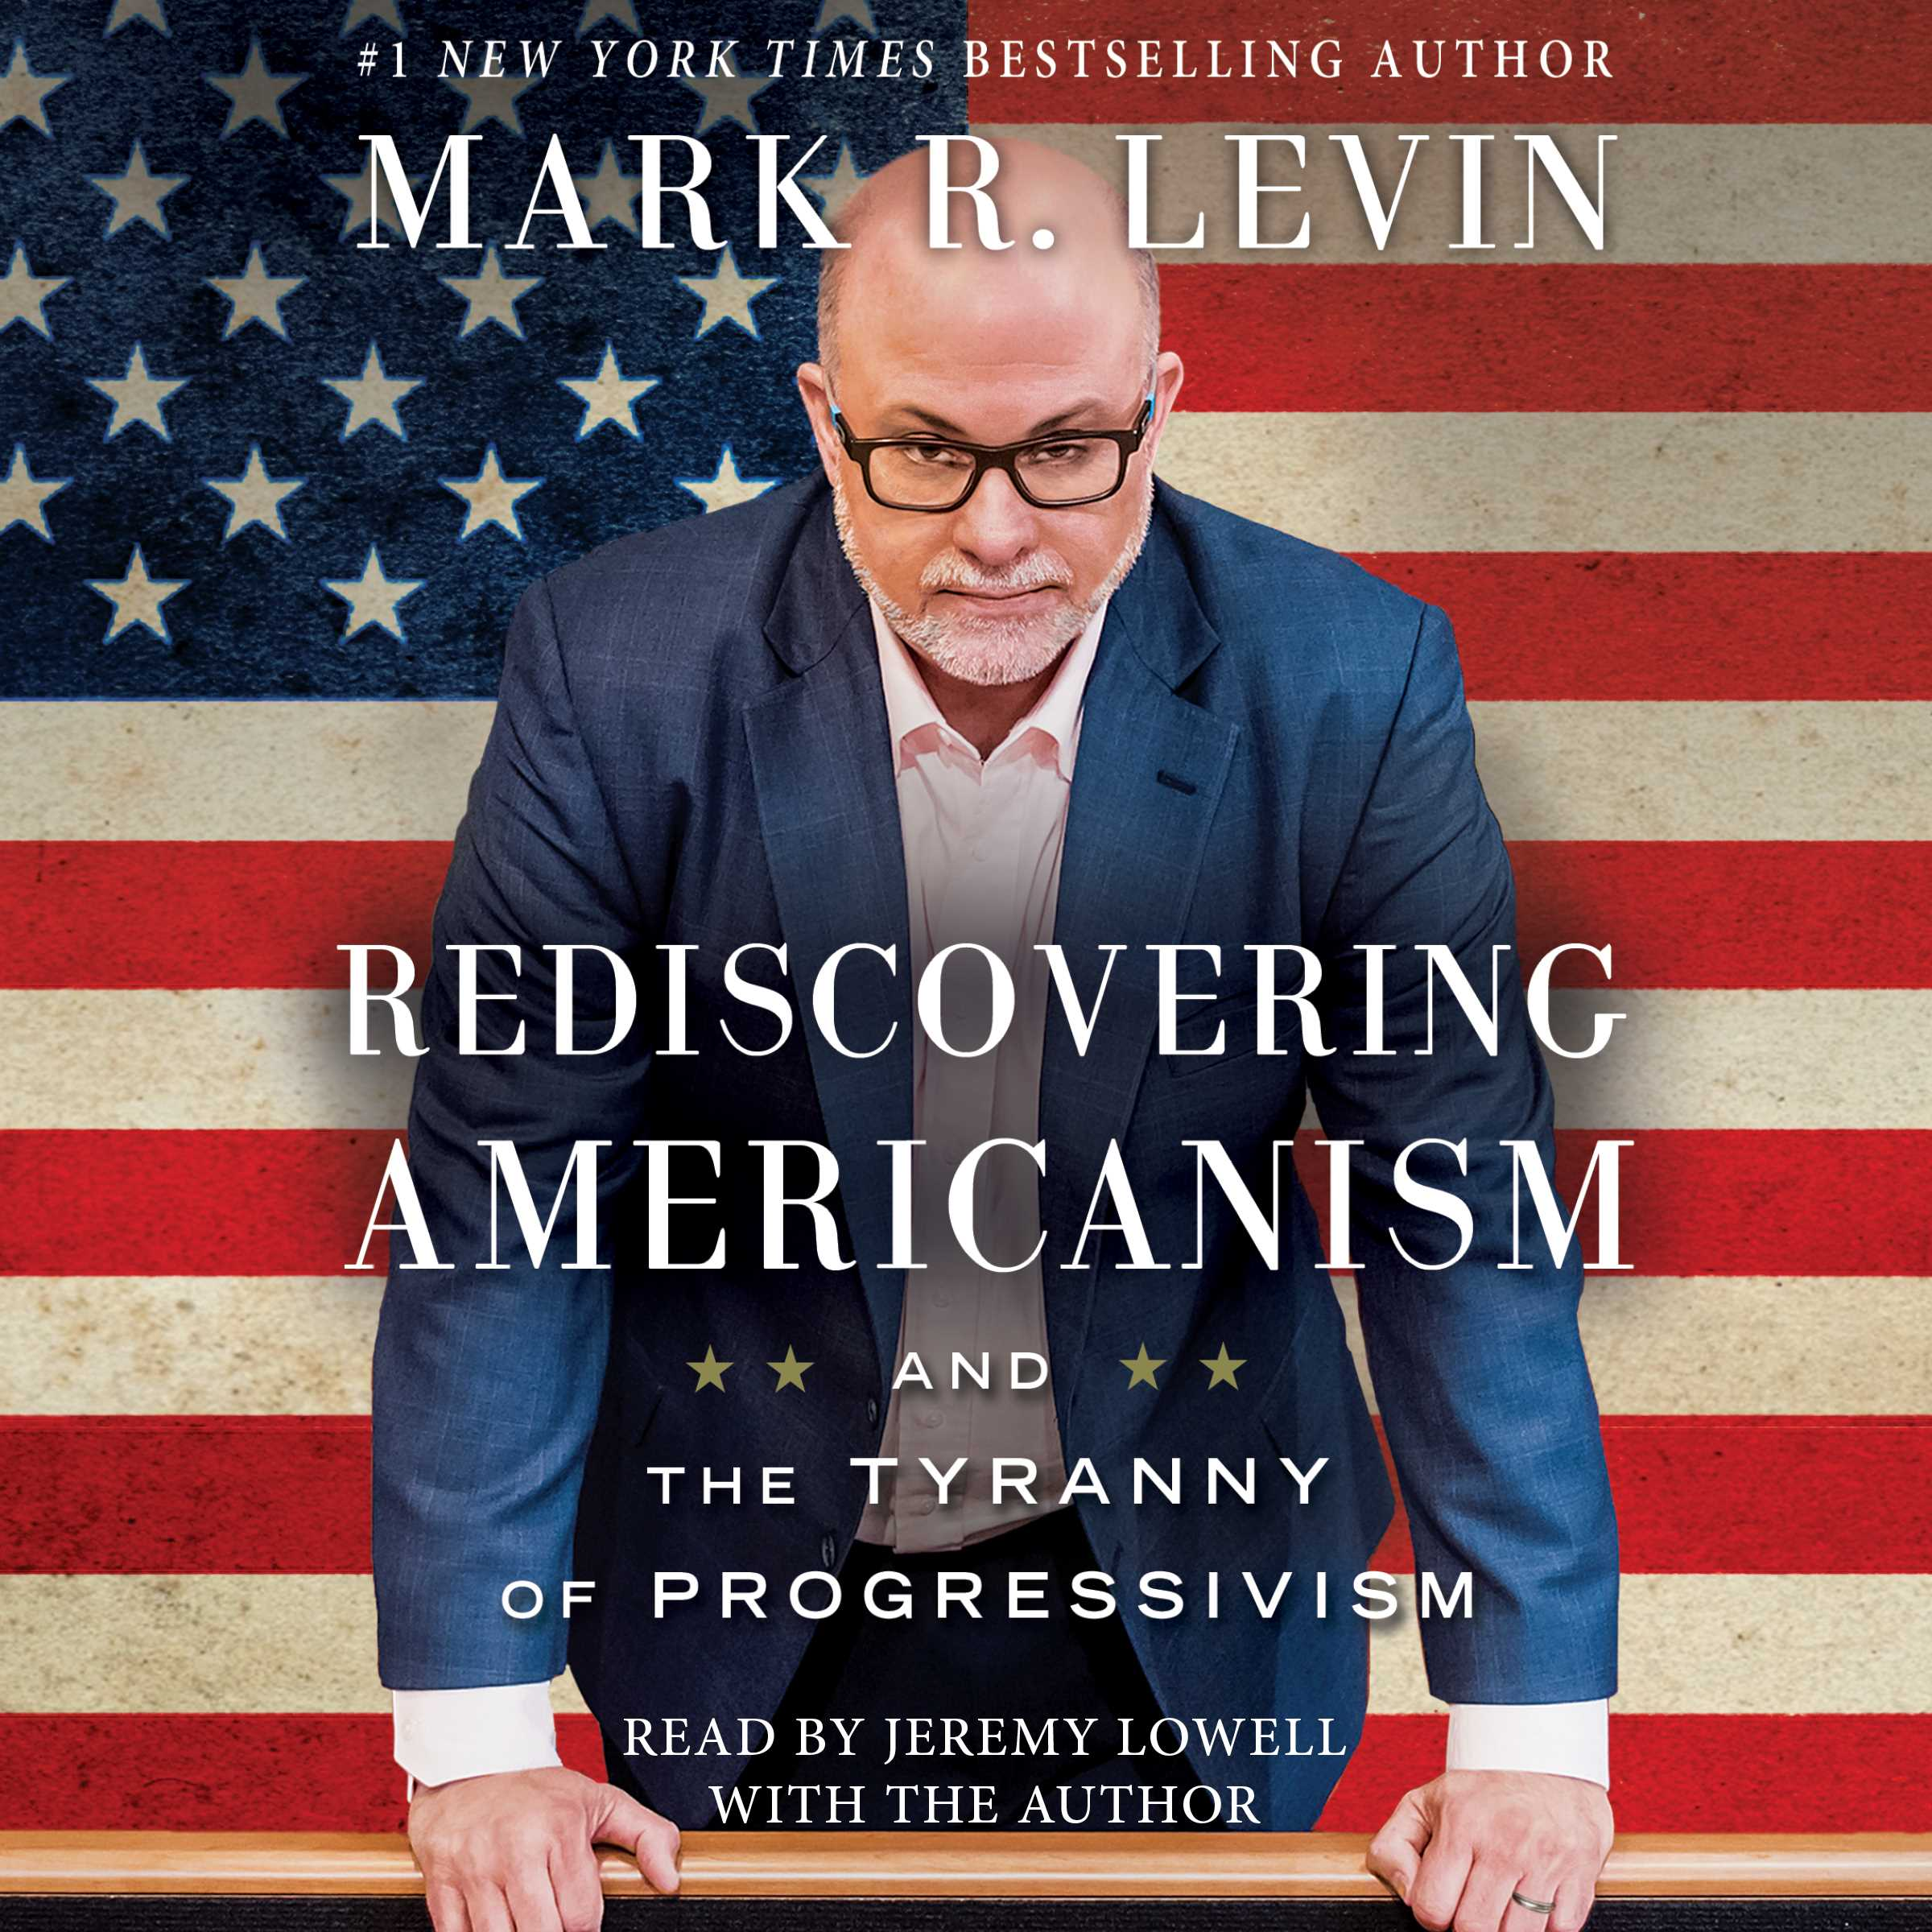 Rediscovering americanism 9781508236238 hr